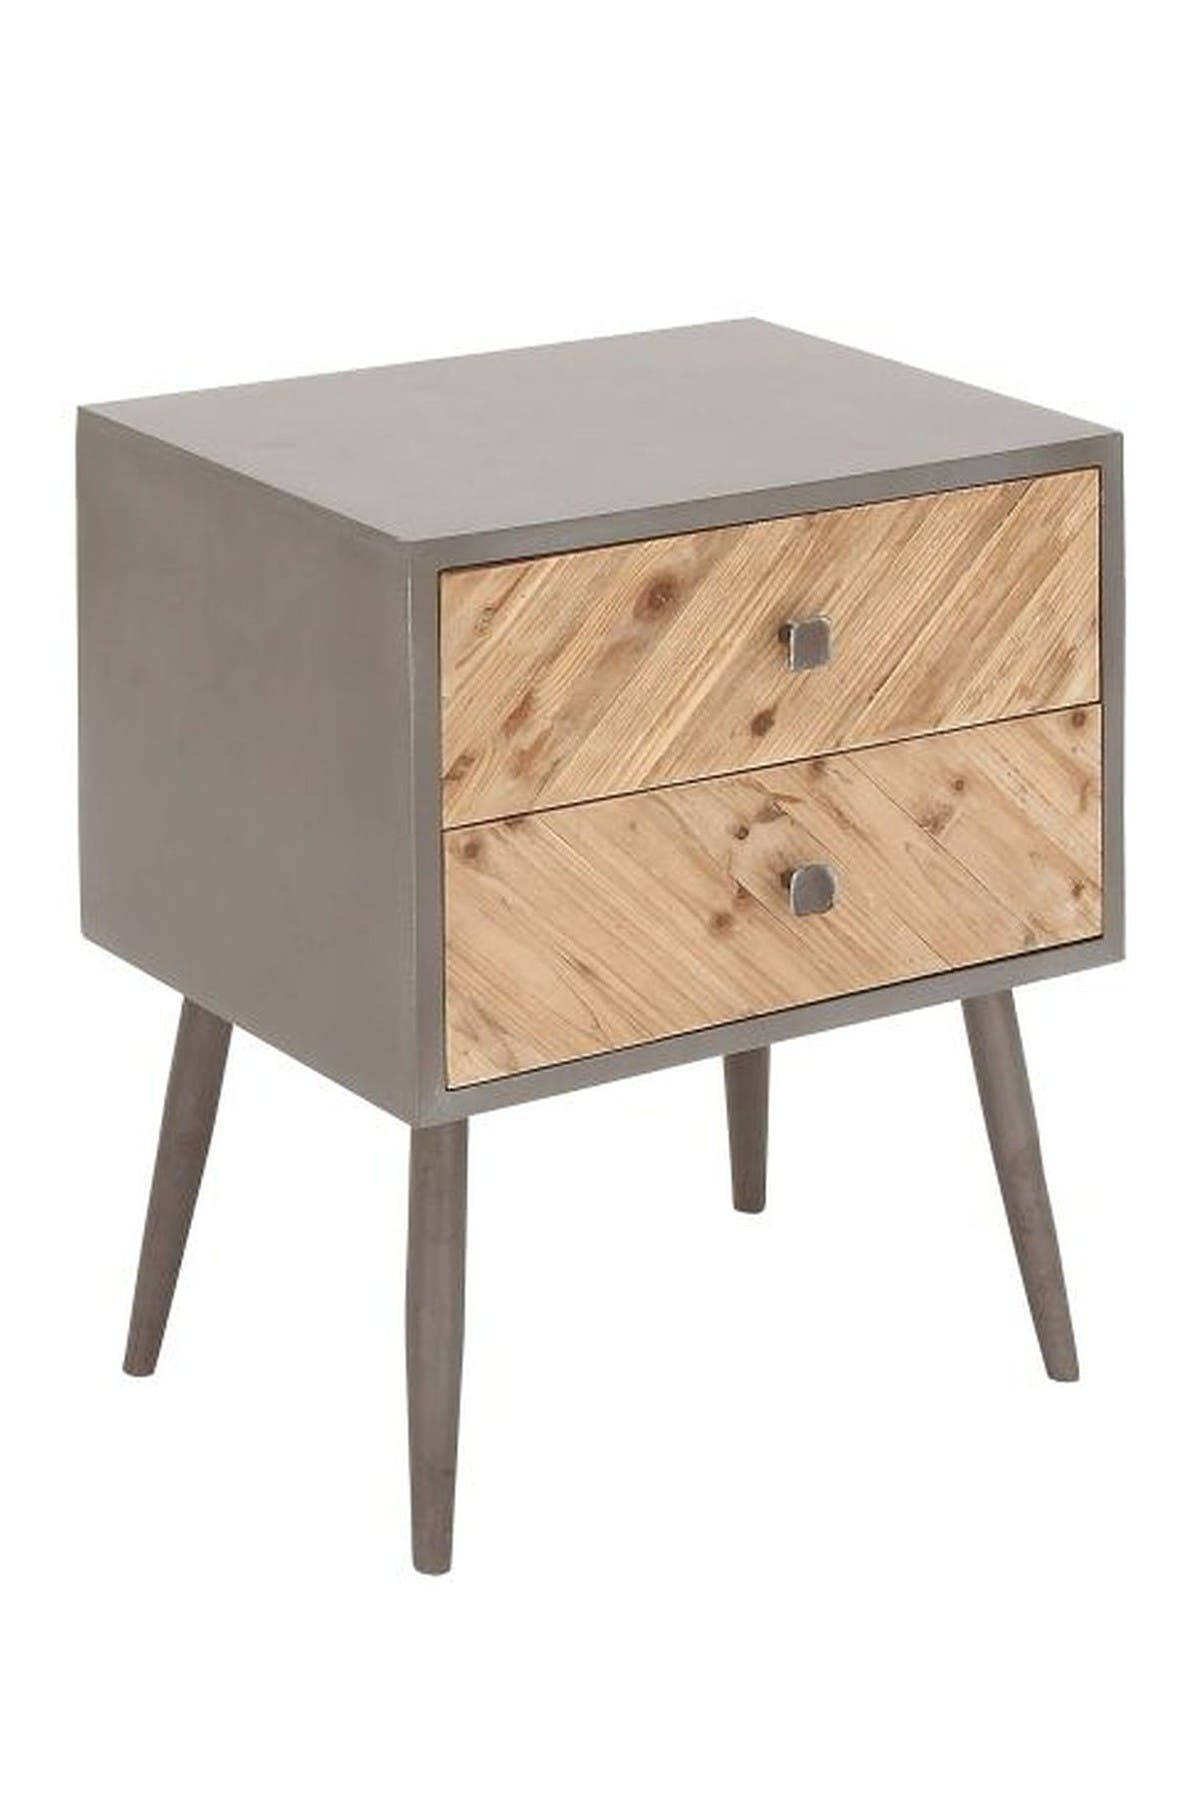 Image of Willow Row Light Grey/Light Brown Small Wood Cabinet